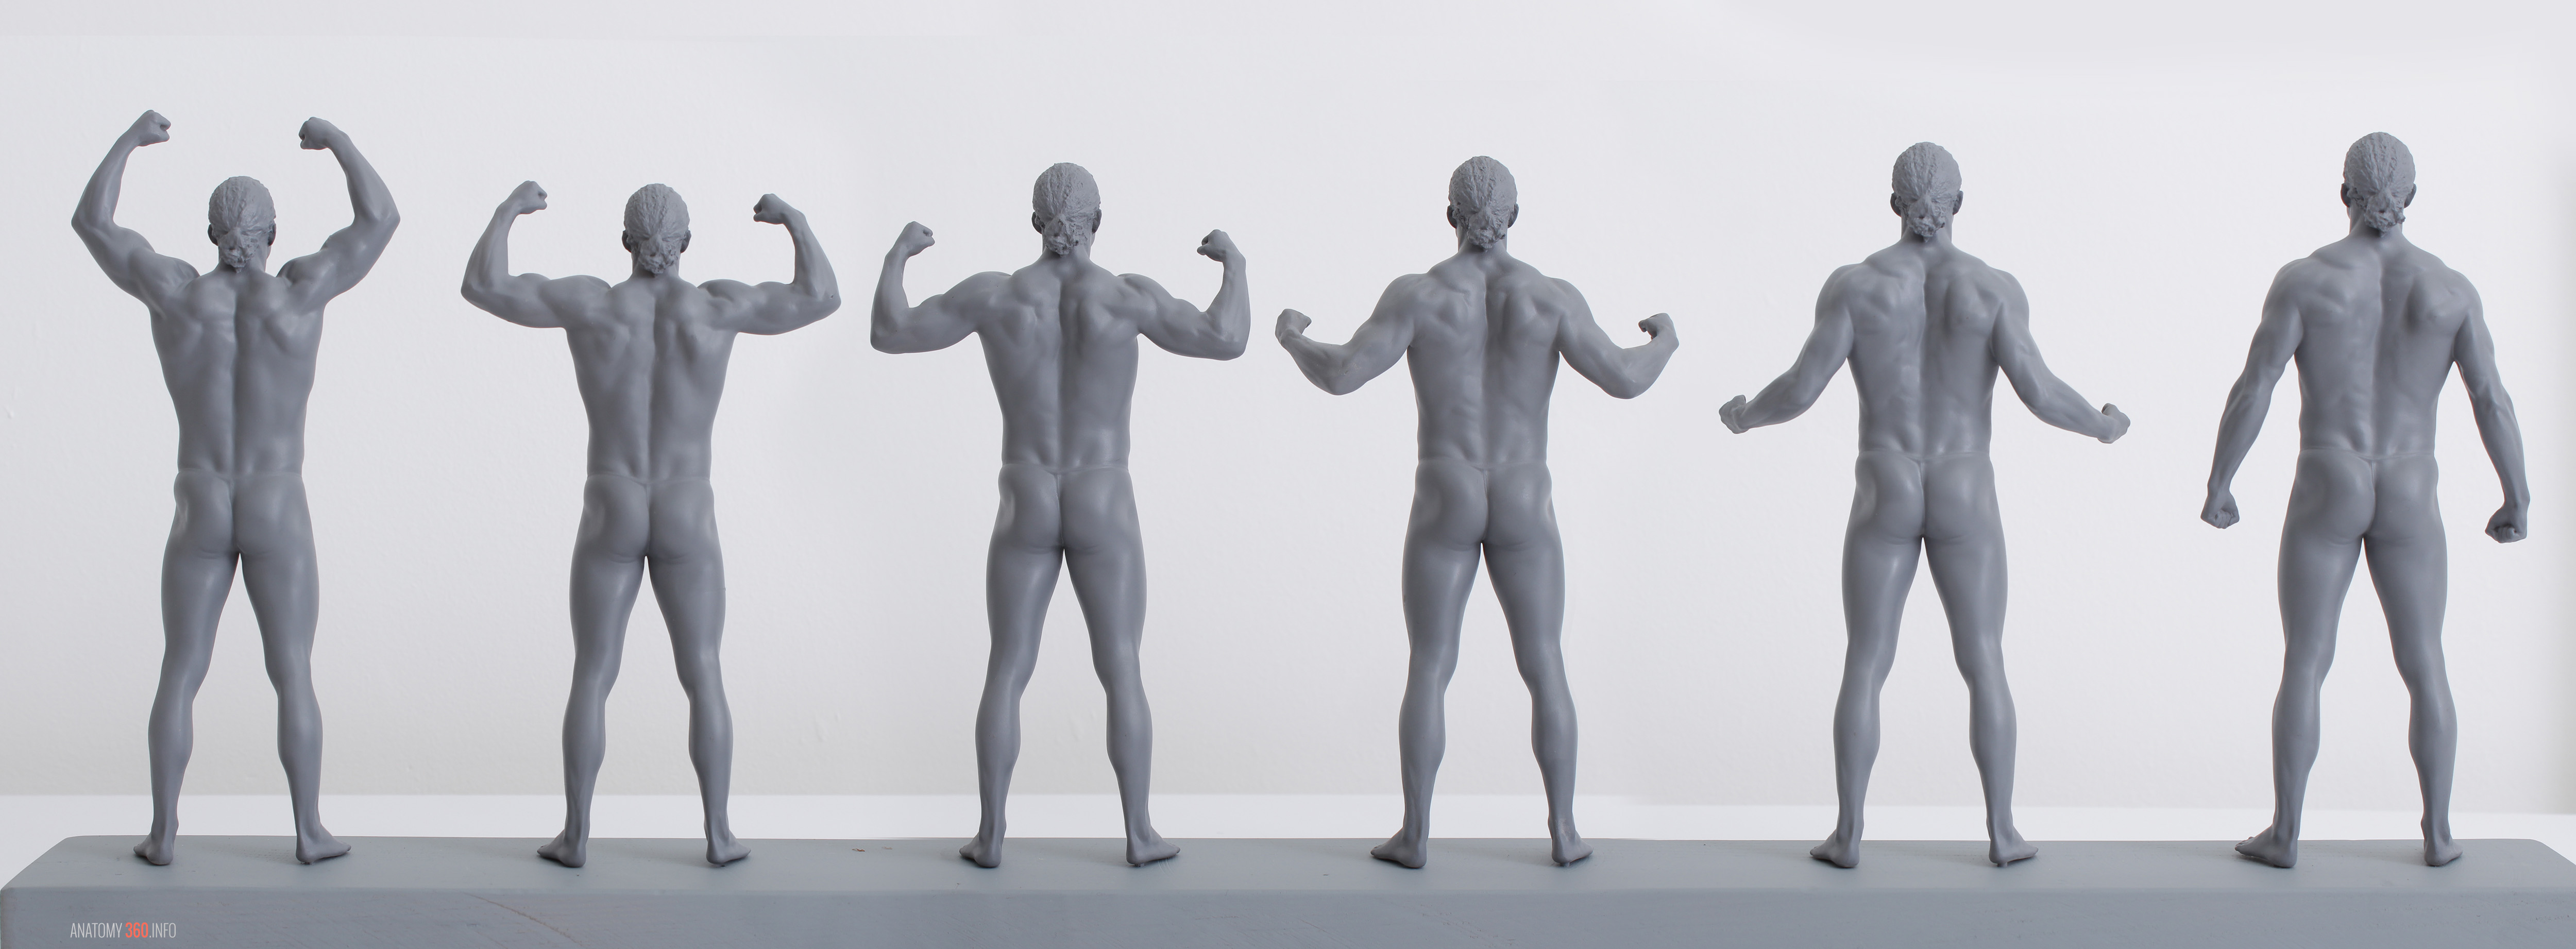 3D printed anatomy in motion | Anatomy 360